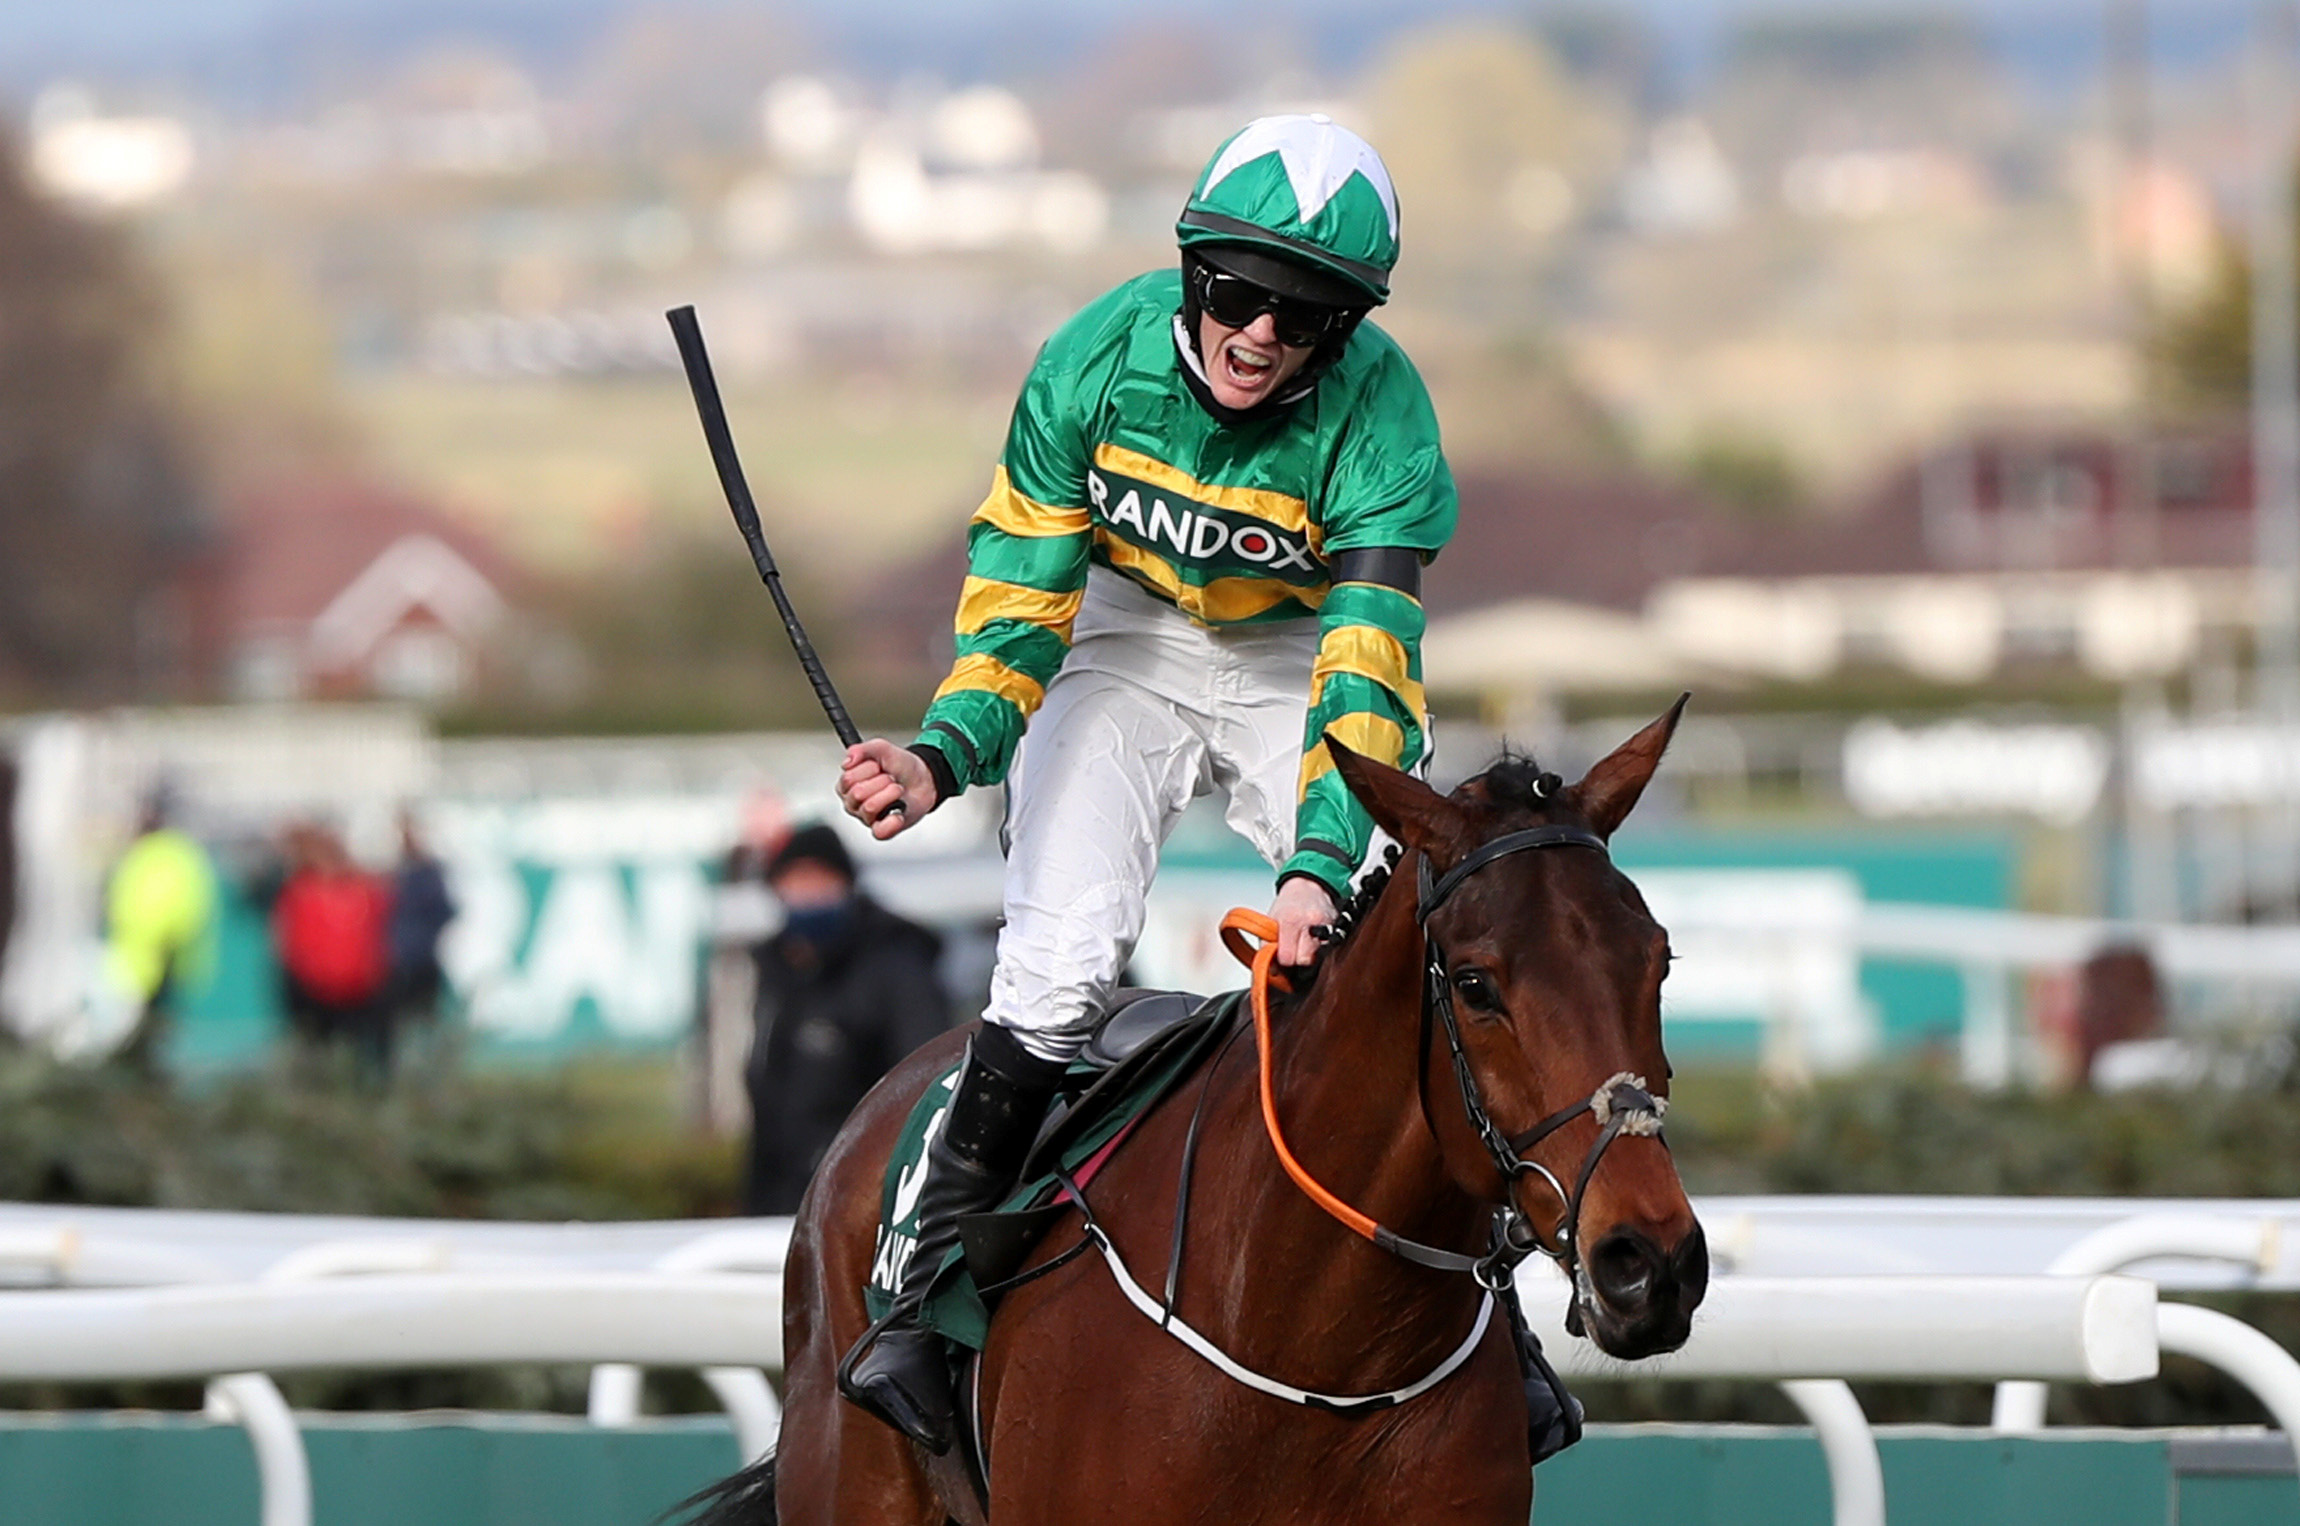 Horse Racing - Grand National Festival - Aintree Racecourse, Liverpool, Britain - April 10, 2021 Rachael Blackmore celebrates winning the Grand National riding Minella Times Pool via REUTERS/Scott Heppell